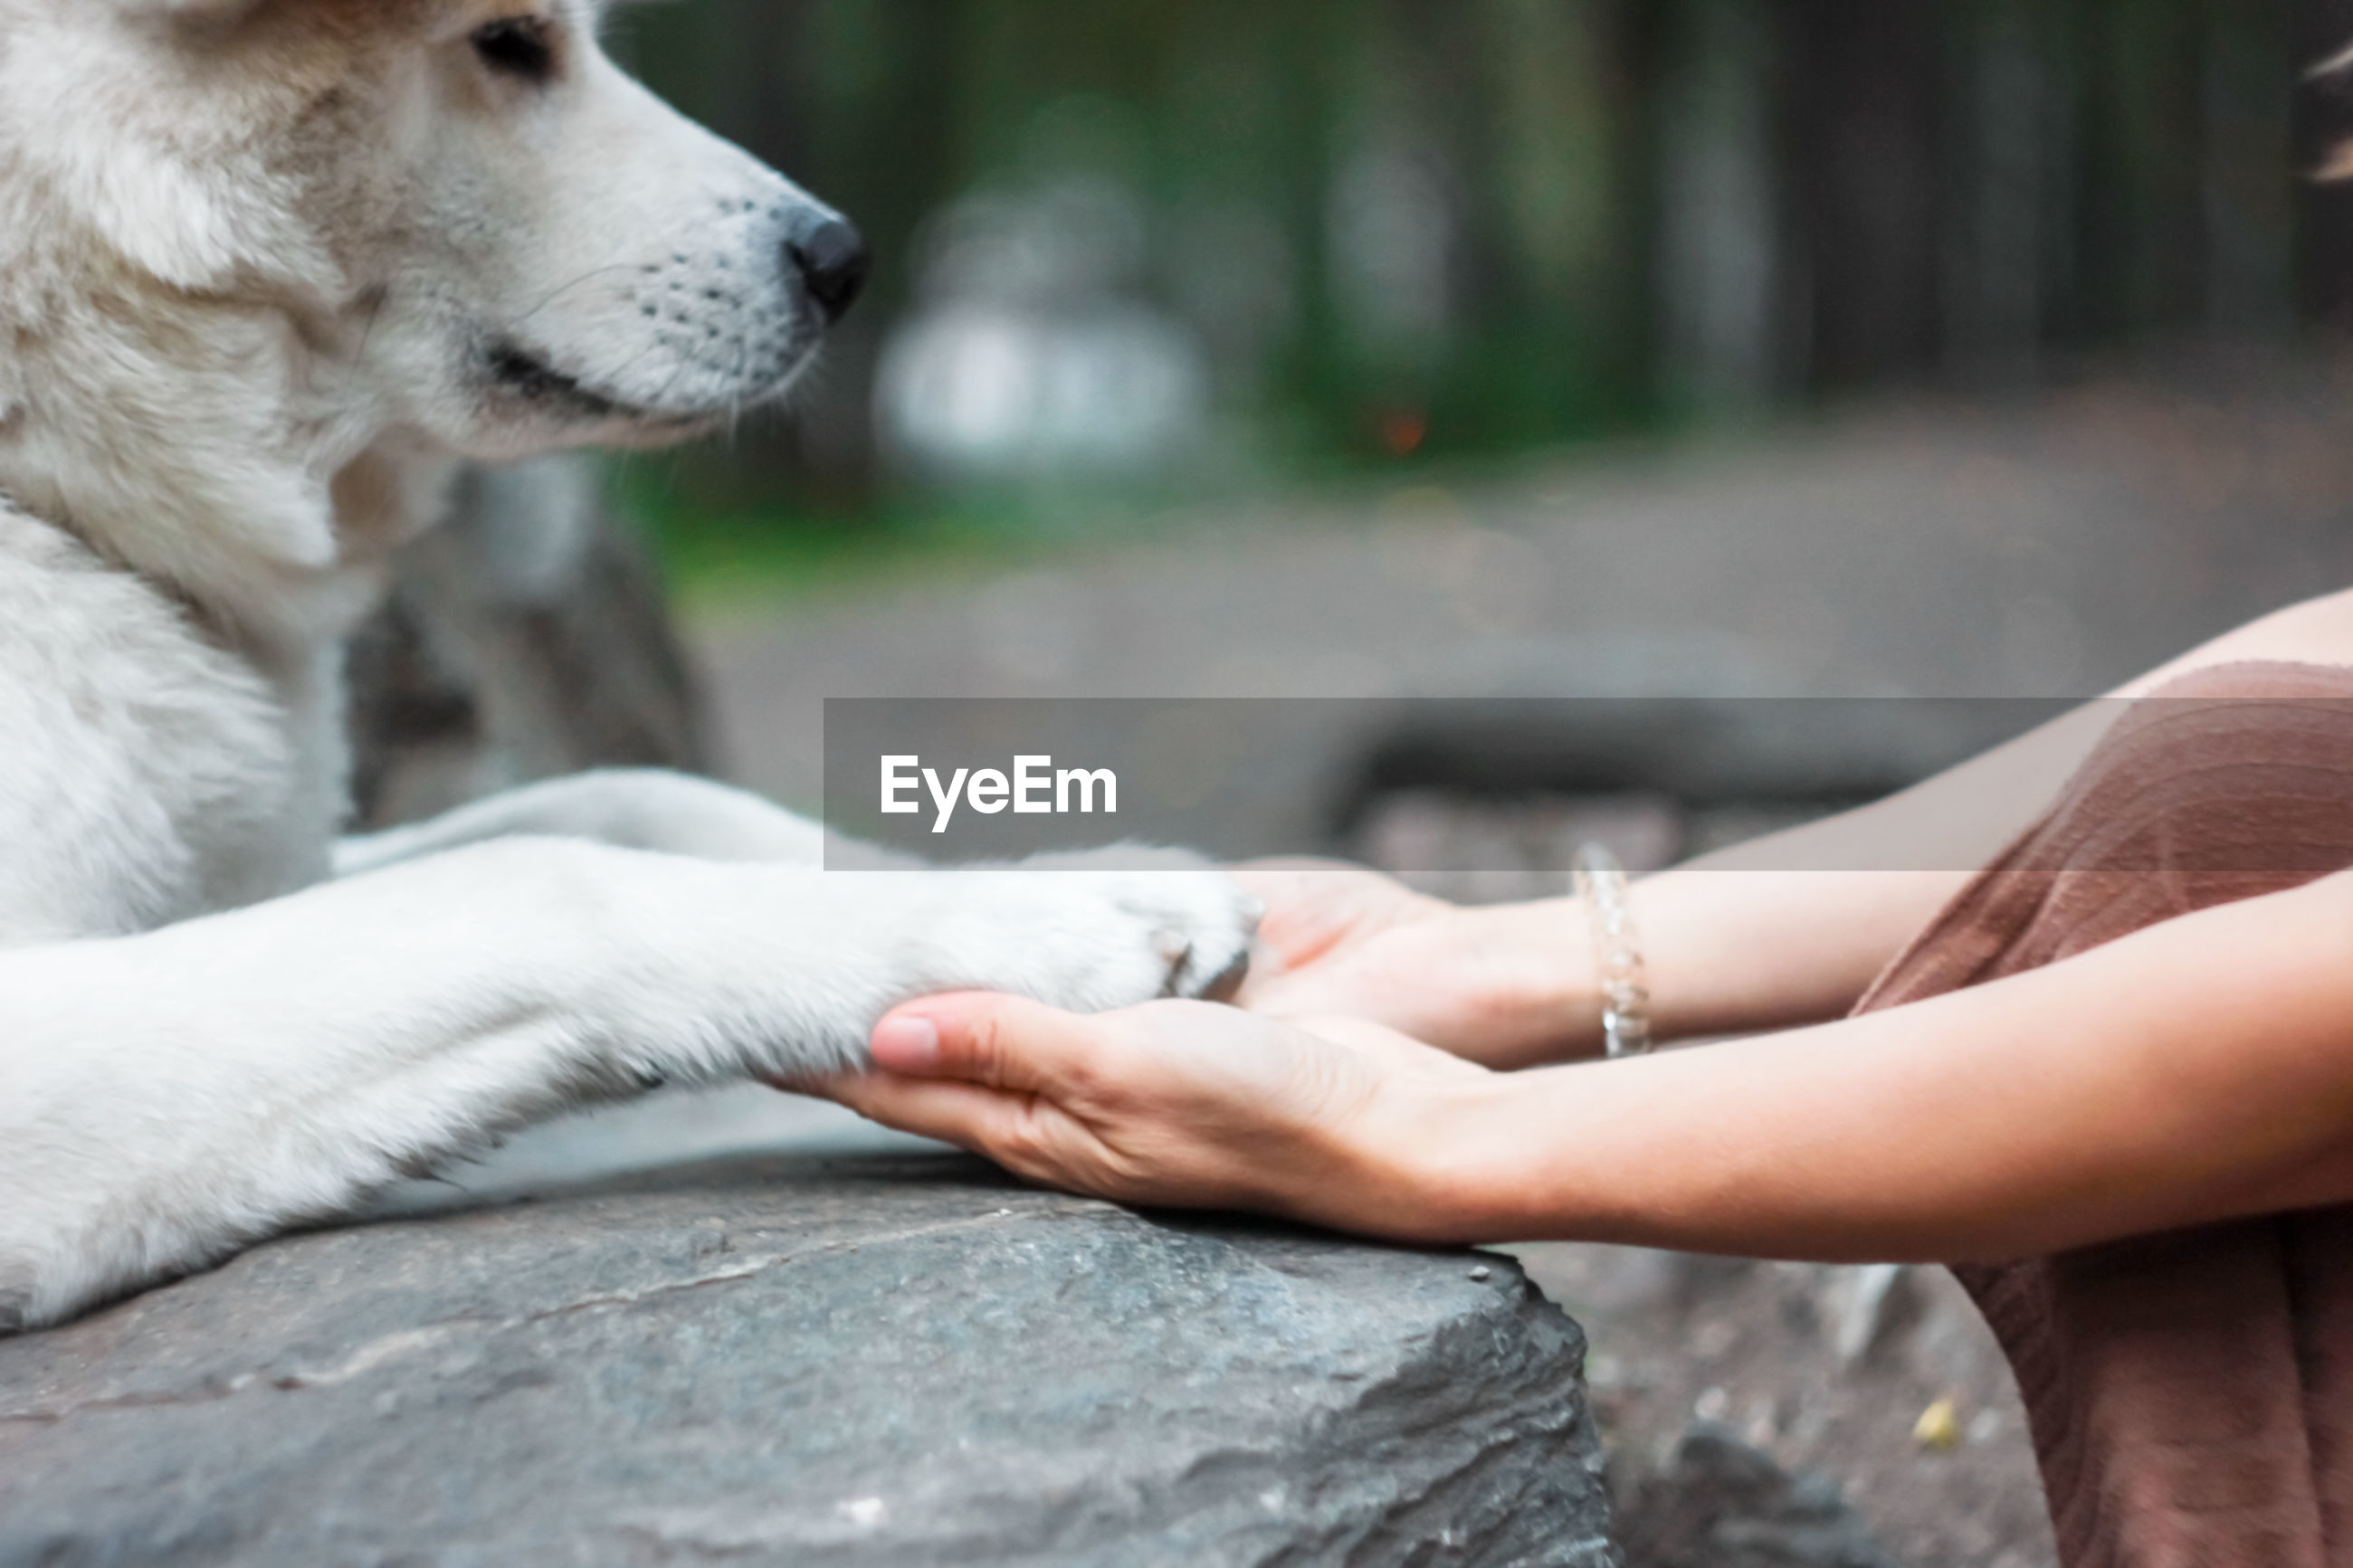 CLOSE-UP OF HAND HOLDING DOG AGAINST BLURRED MOTION